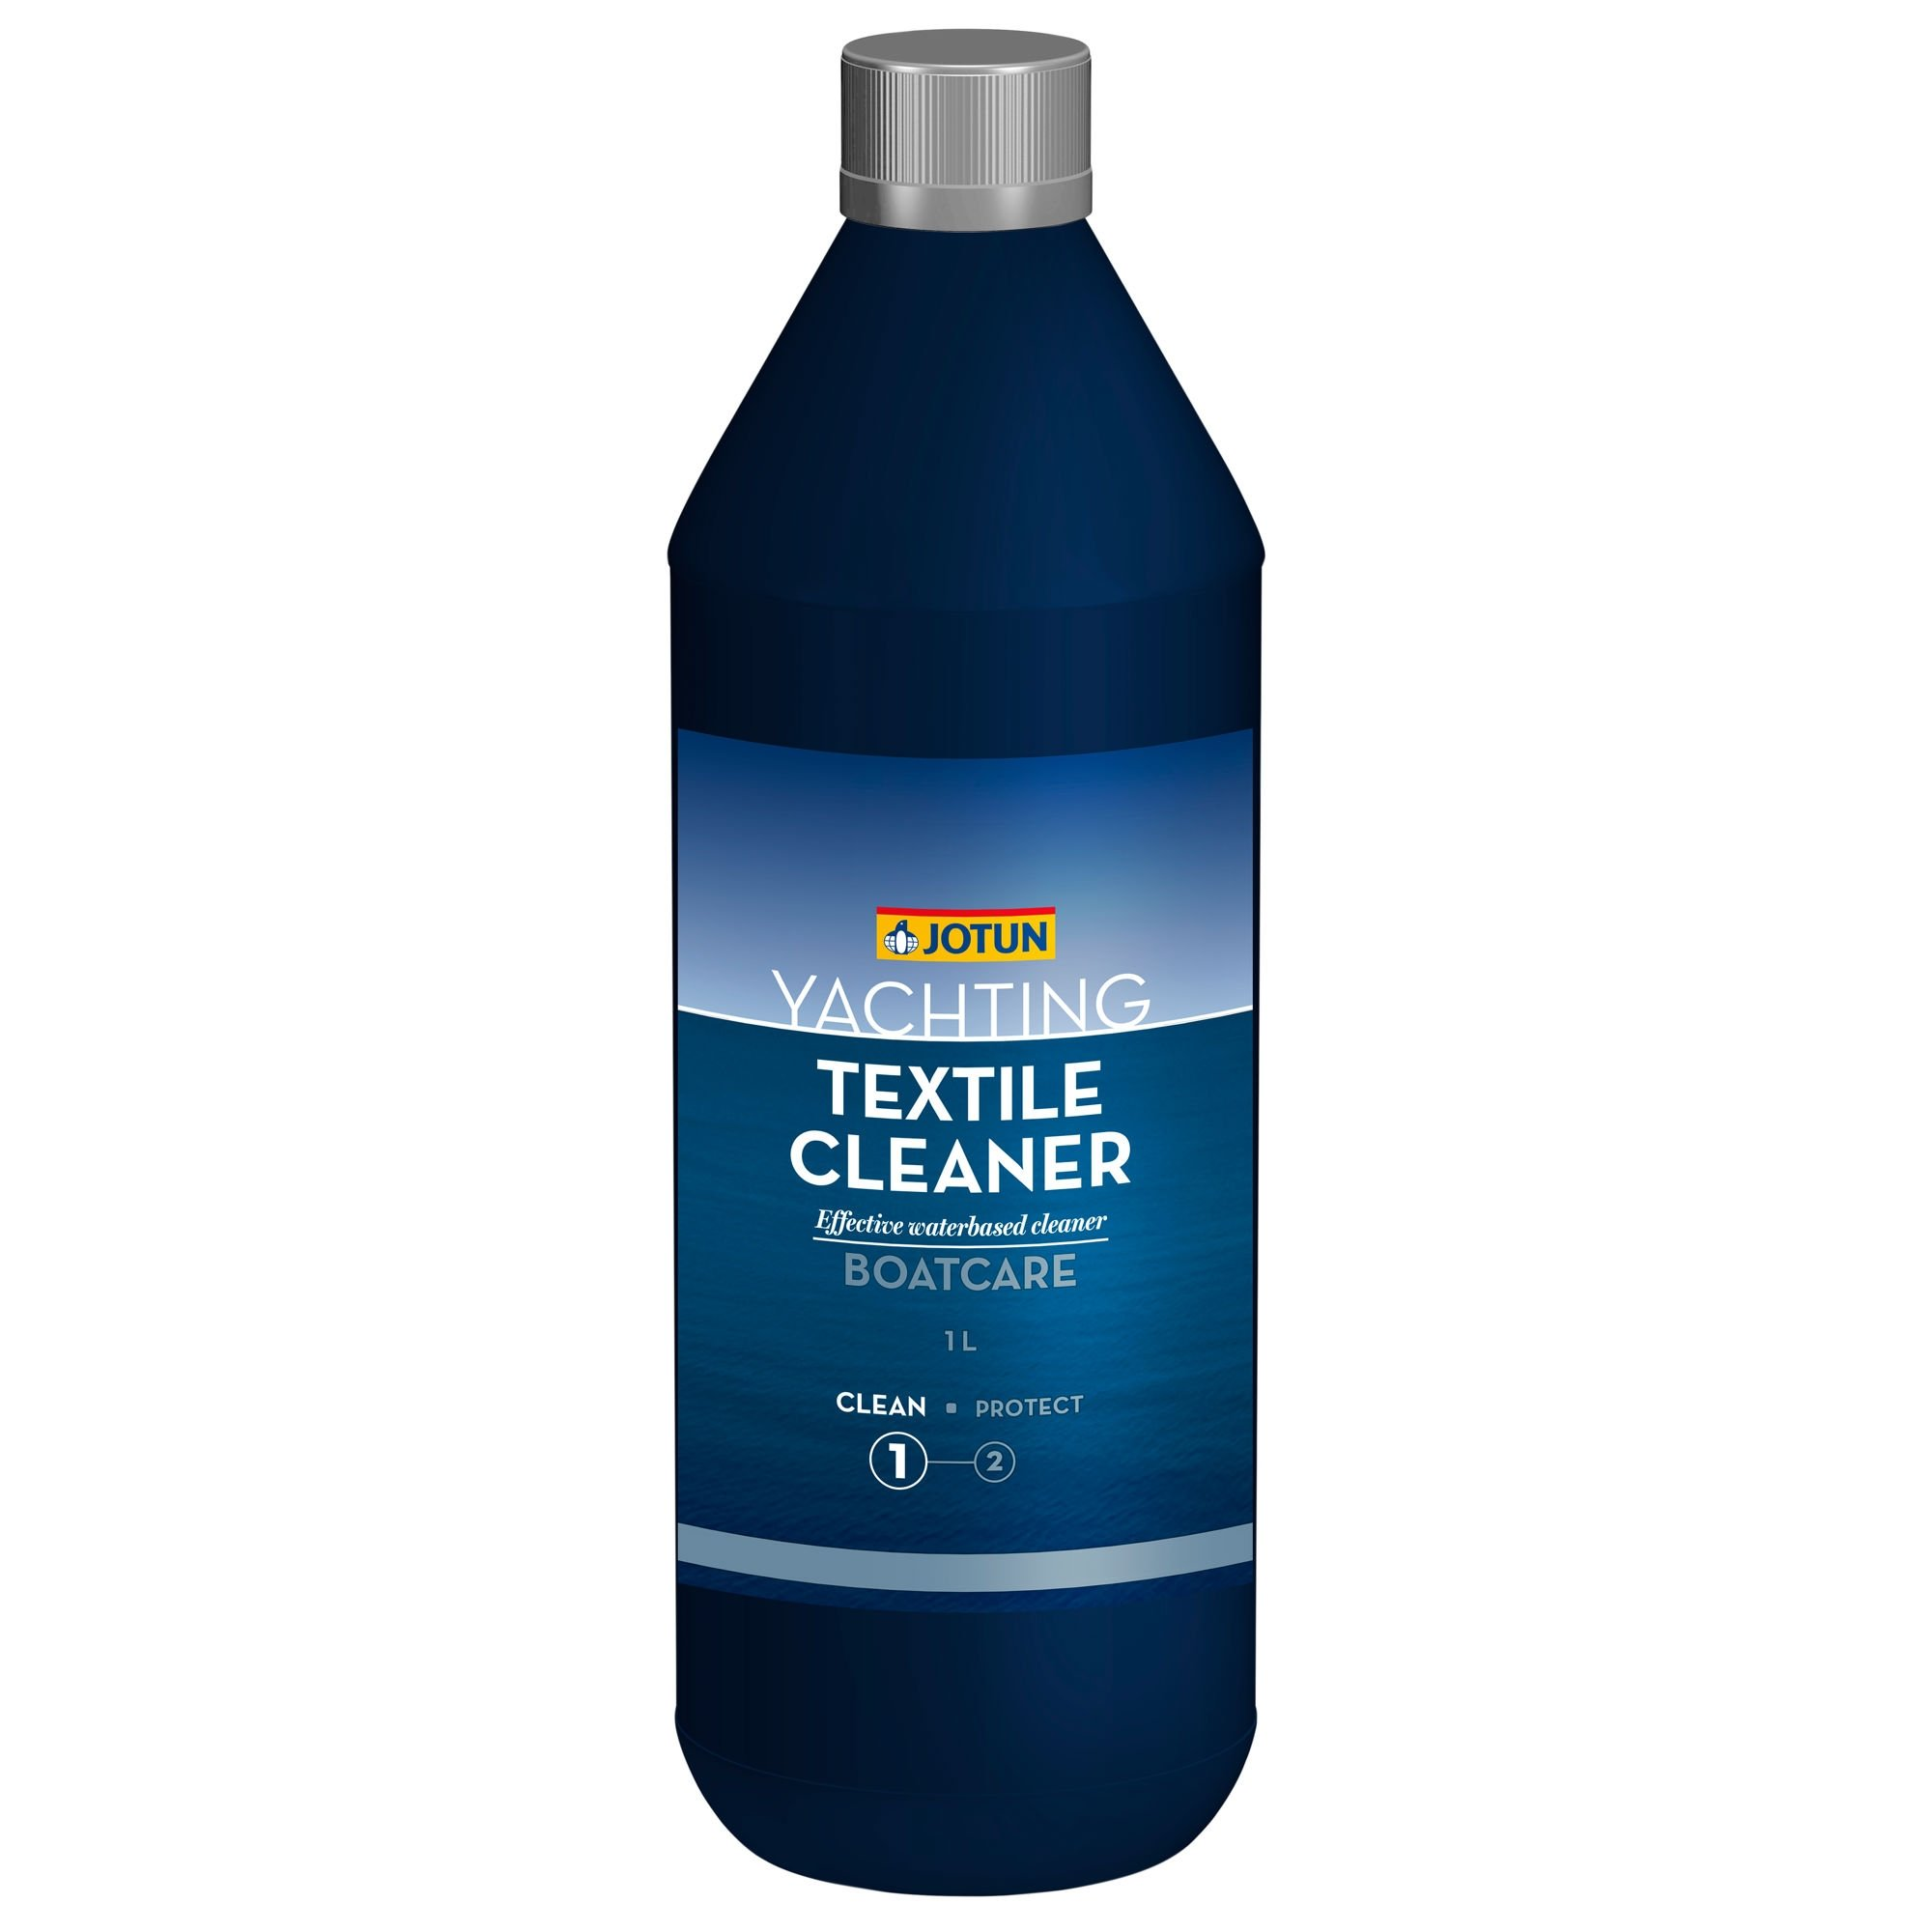 Yachting Textile Cleaner